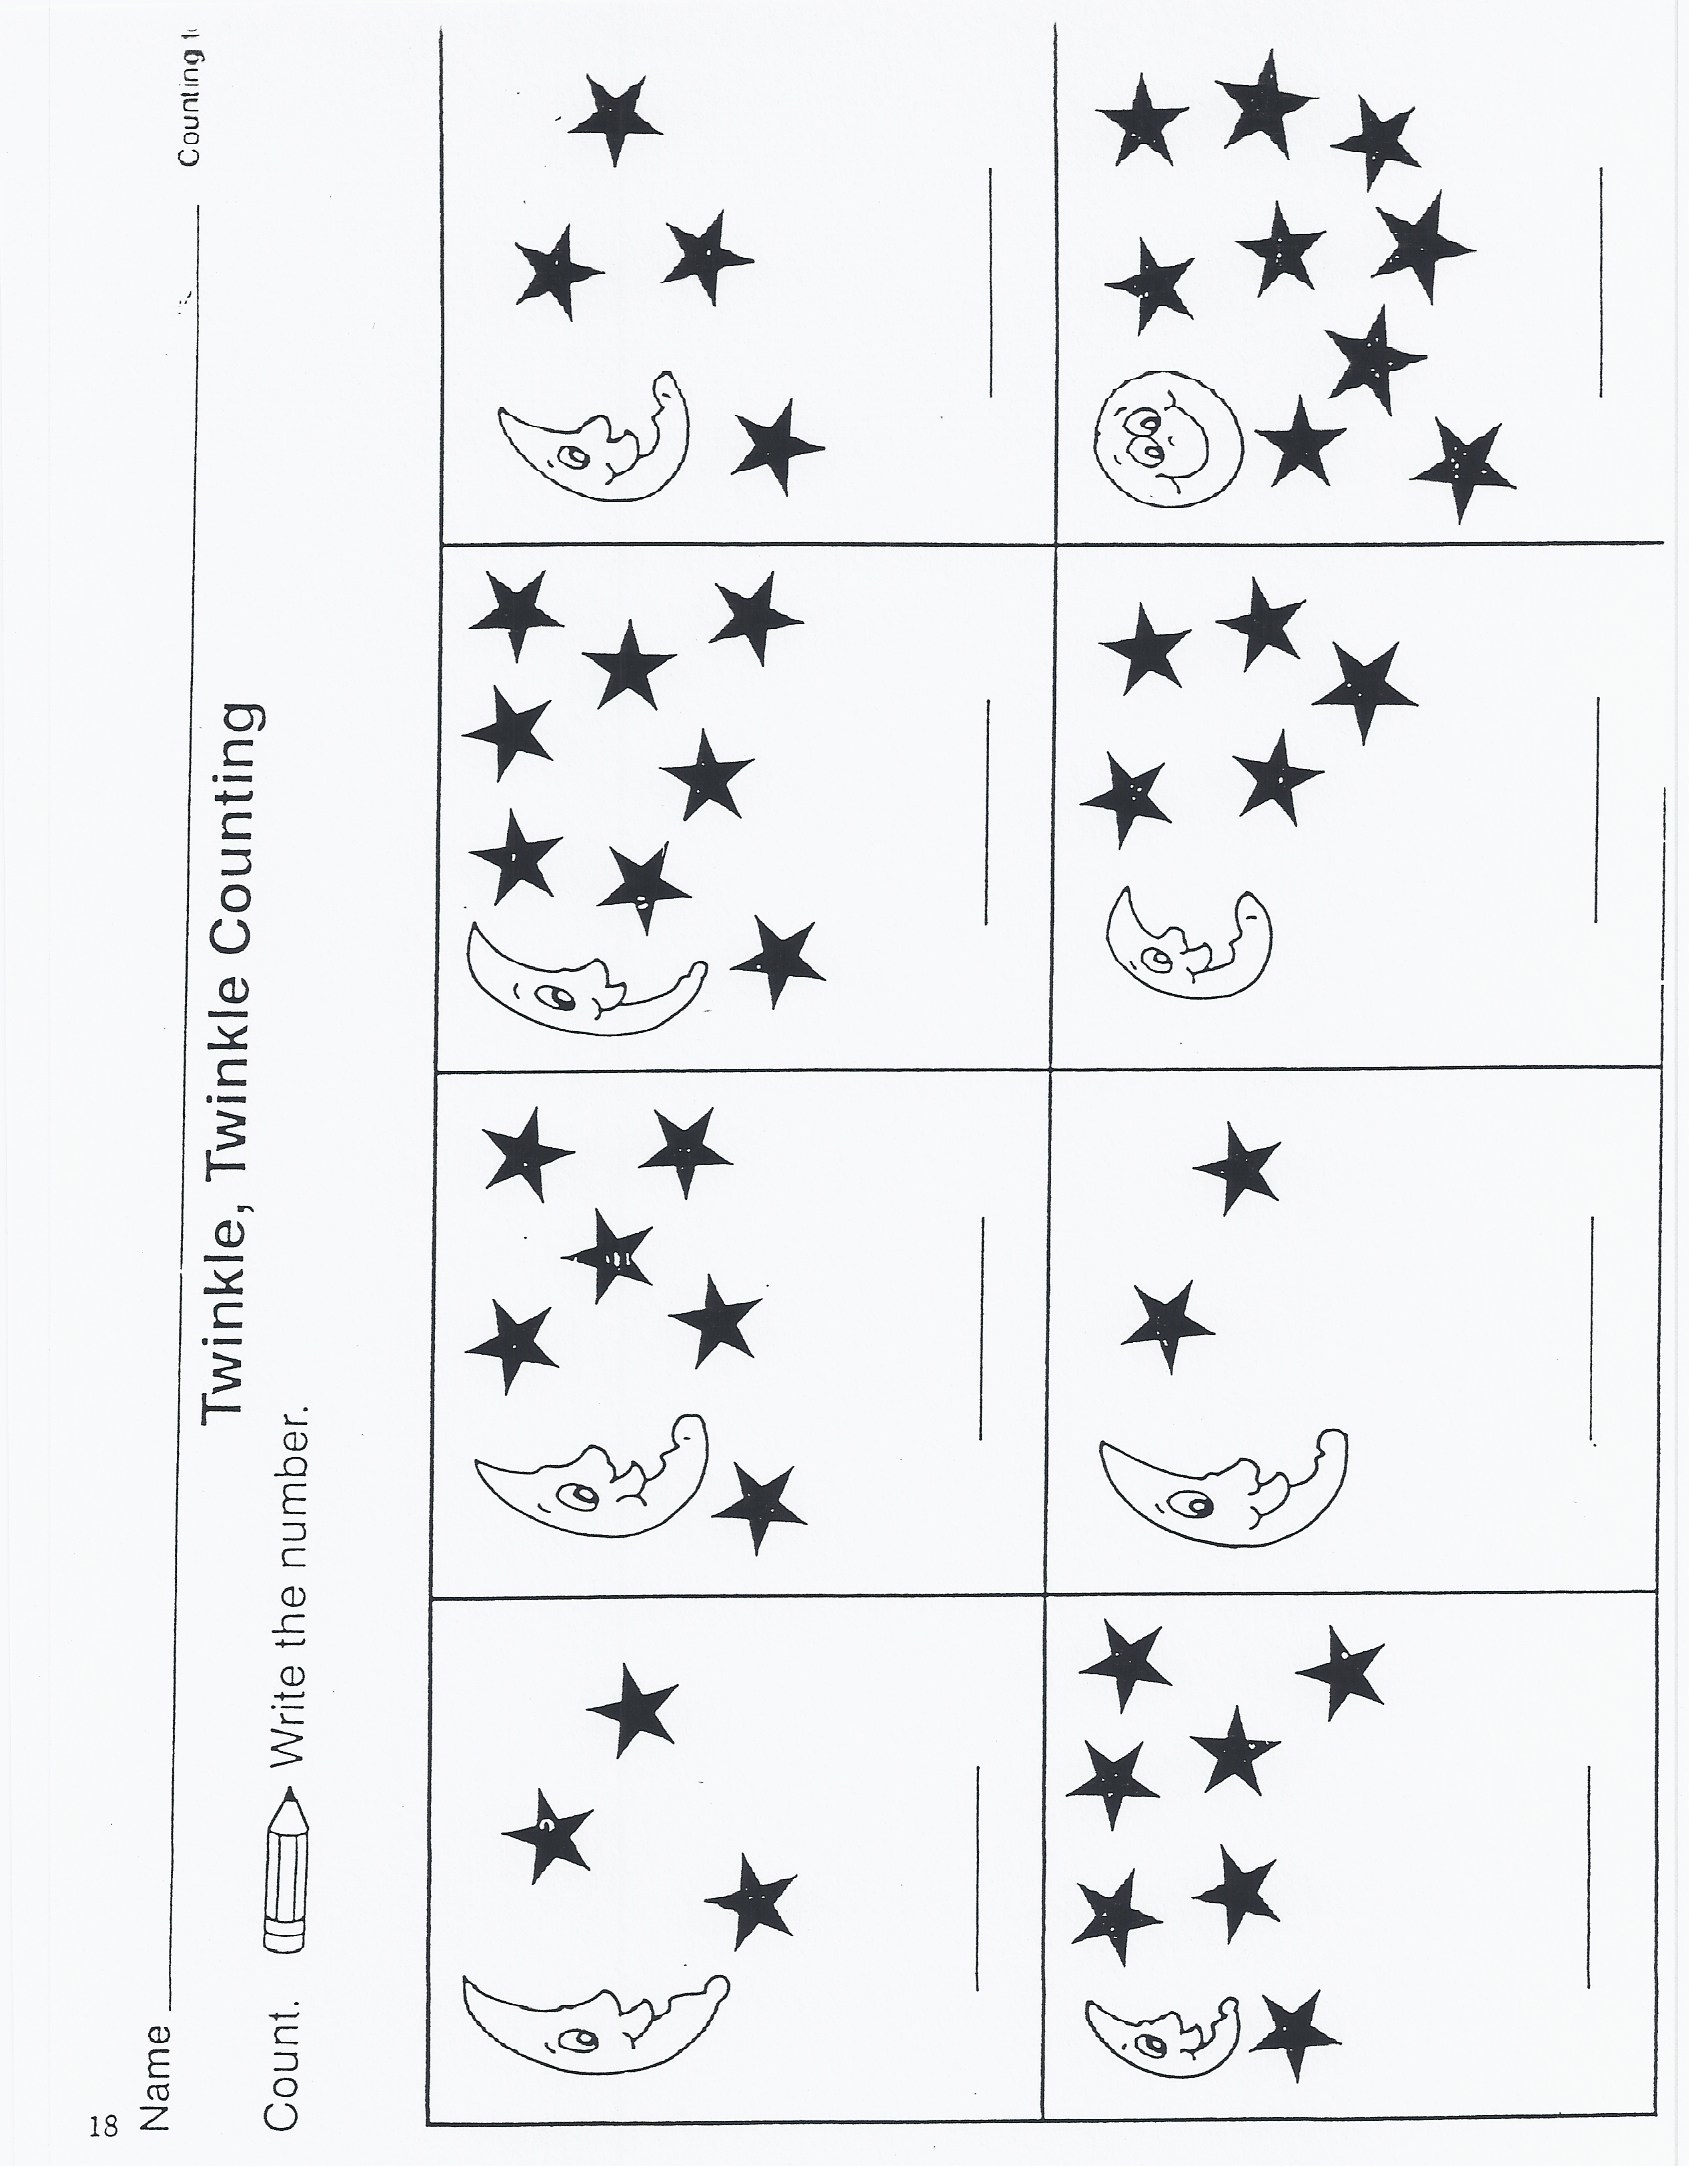 Astronaut Worksheet Preschool (page 3) - Pics about space